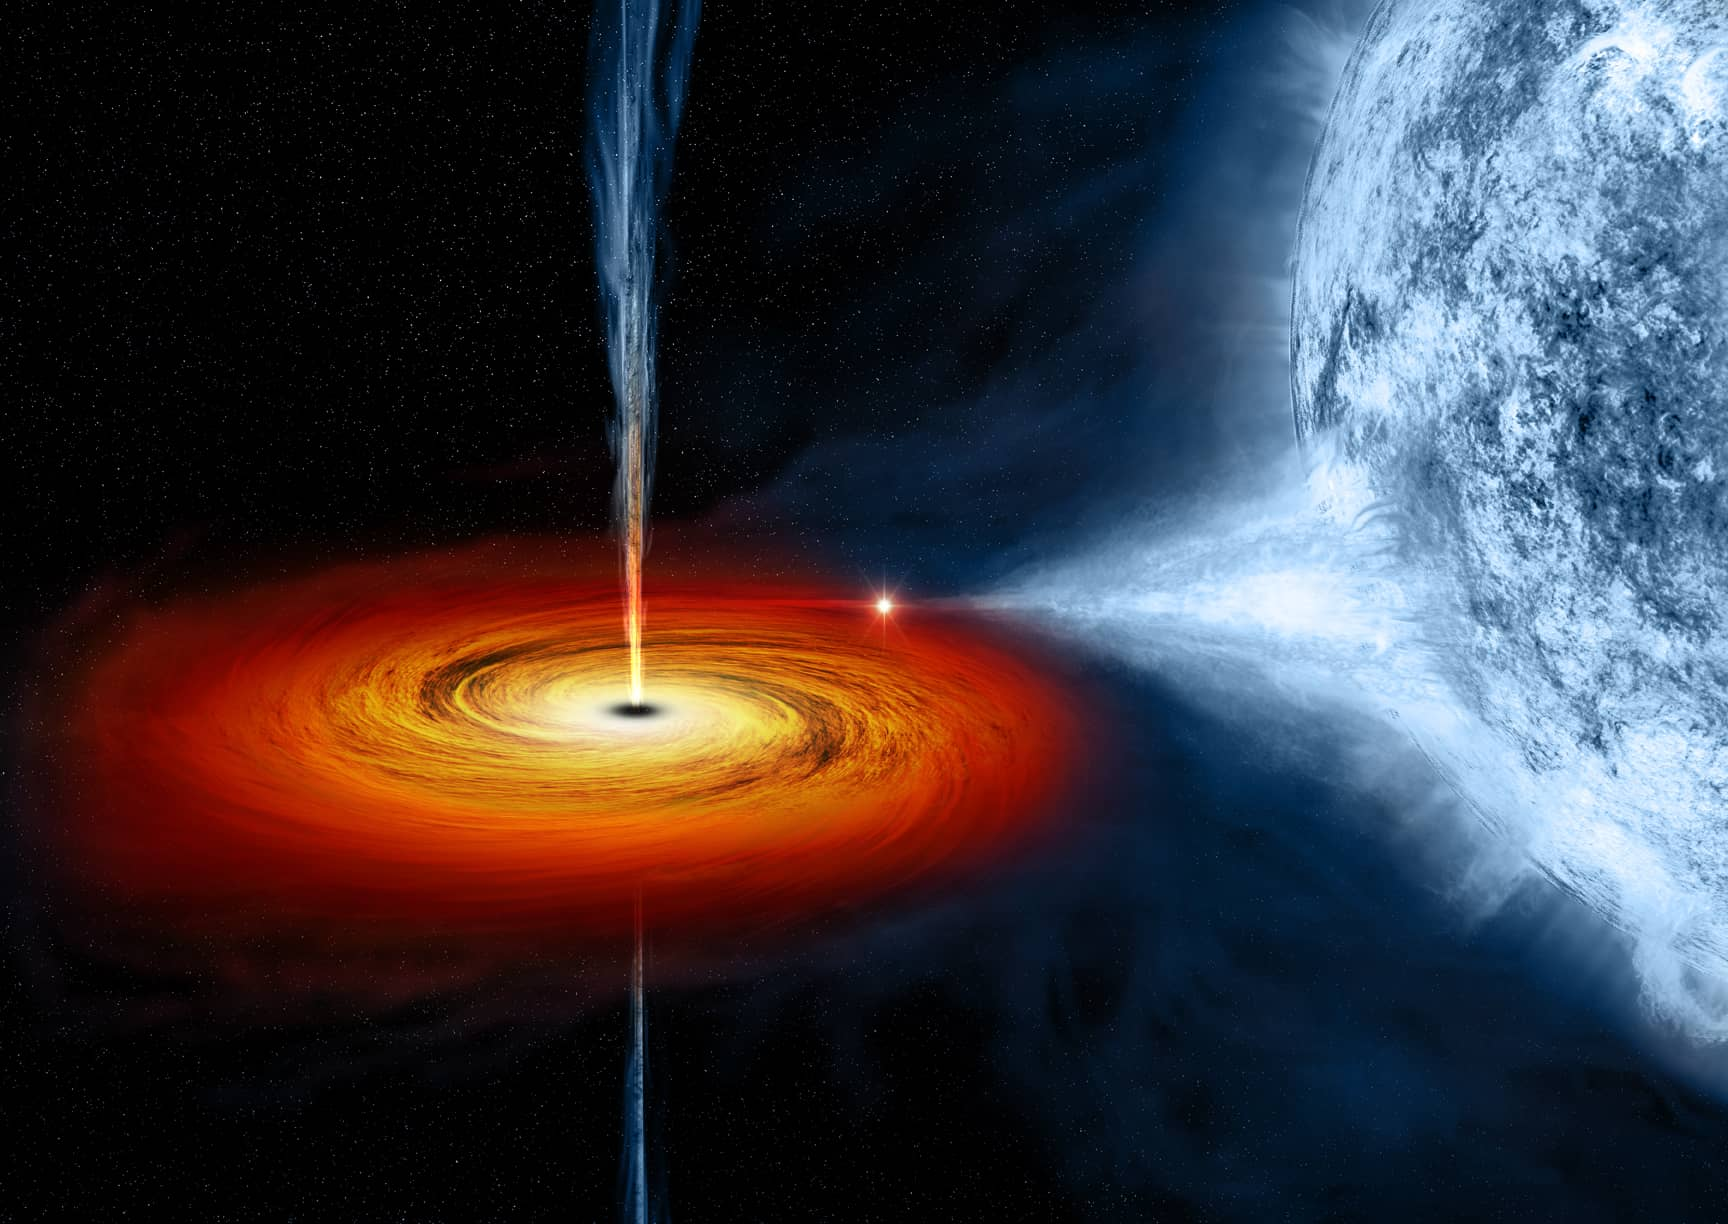 First Ever Images of Supermassive Black Hole From Center of Our Galaxy